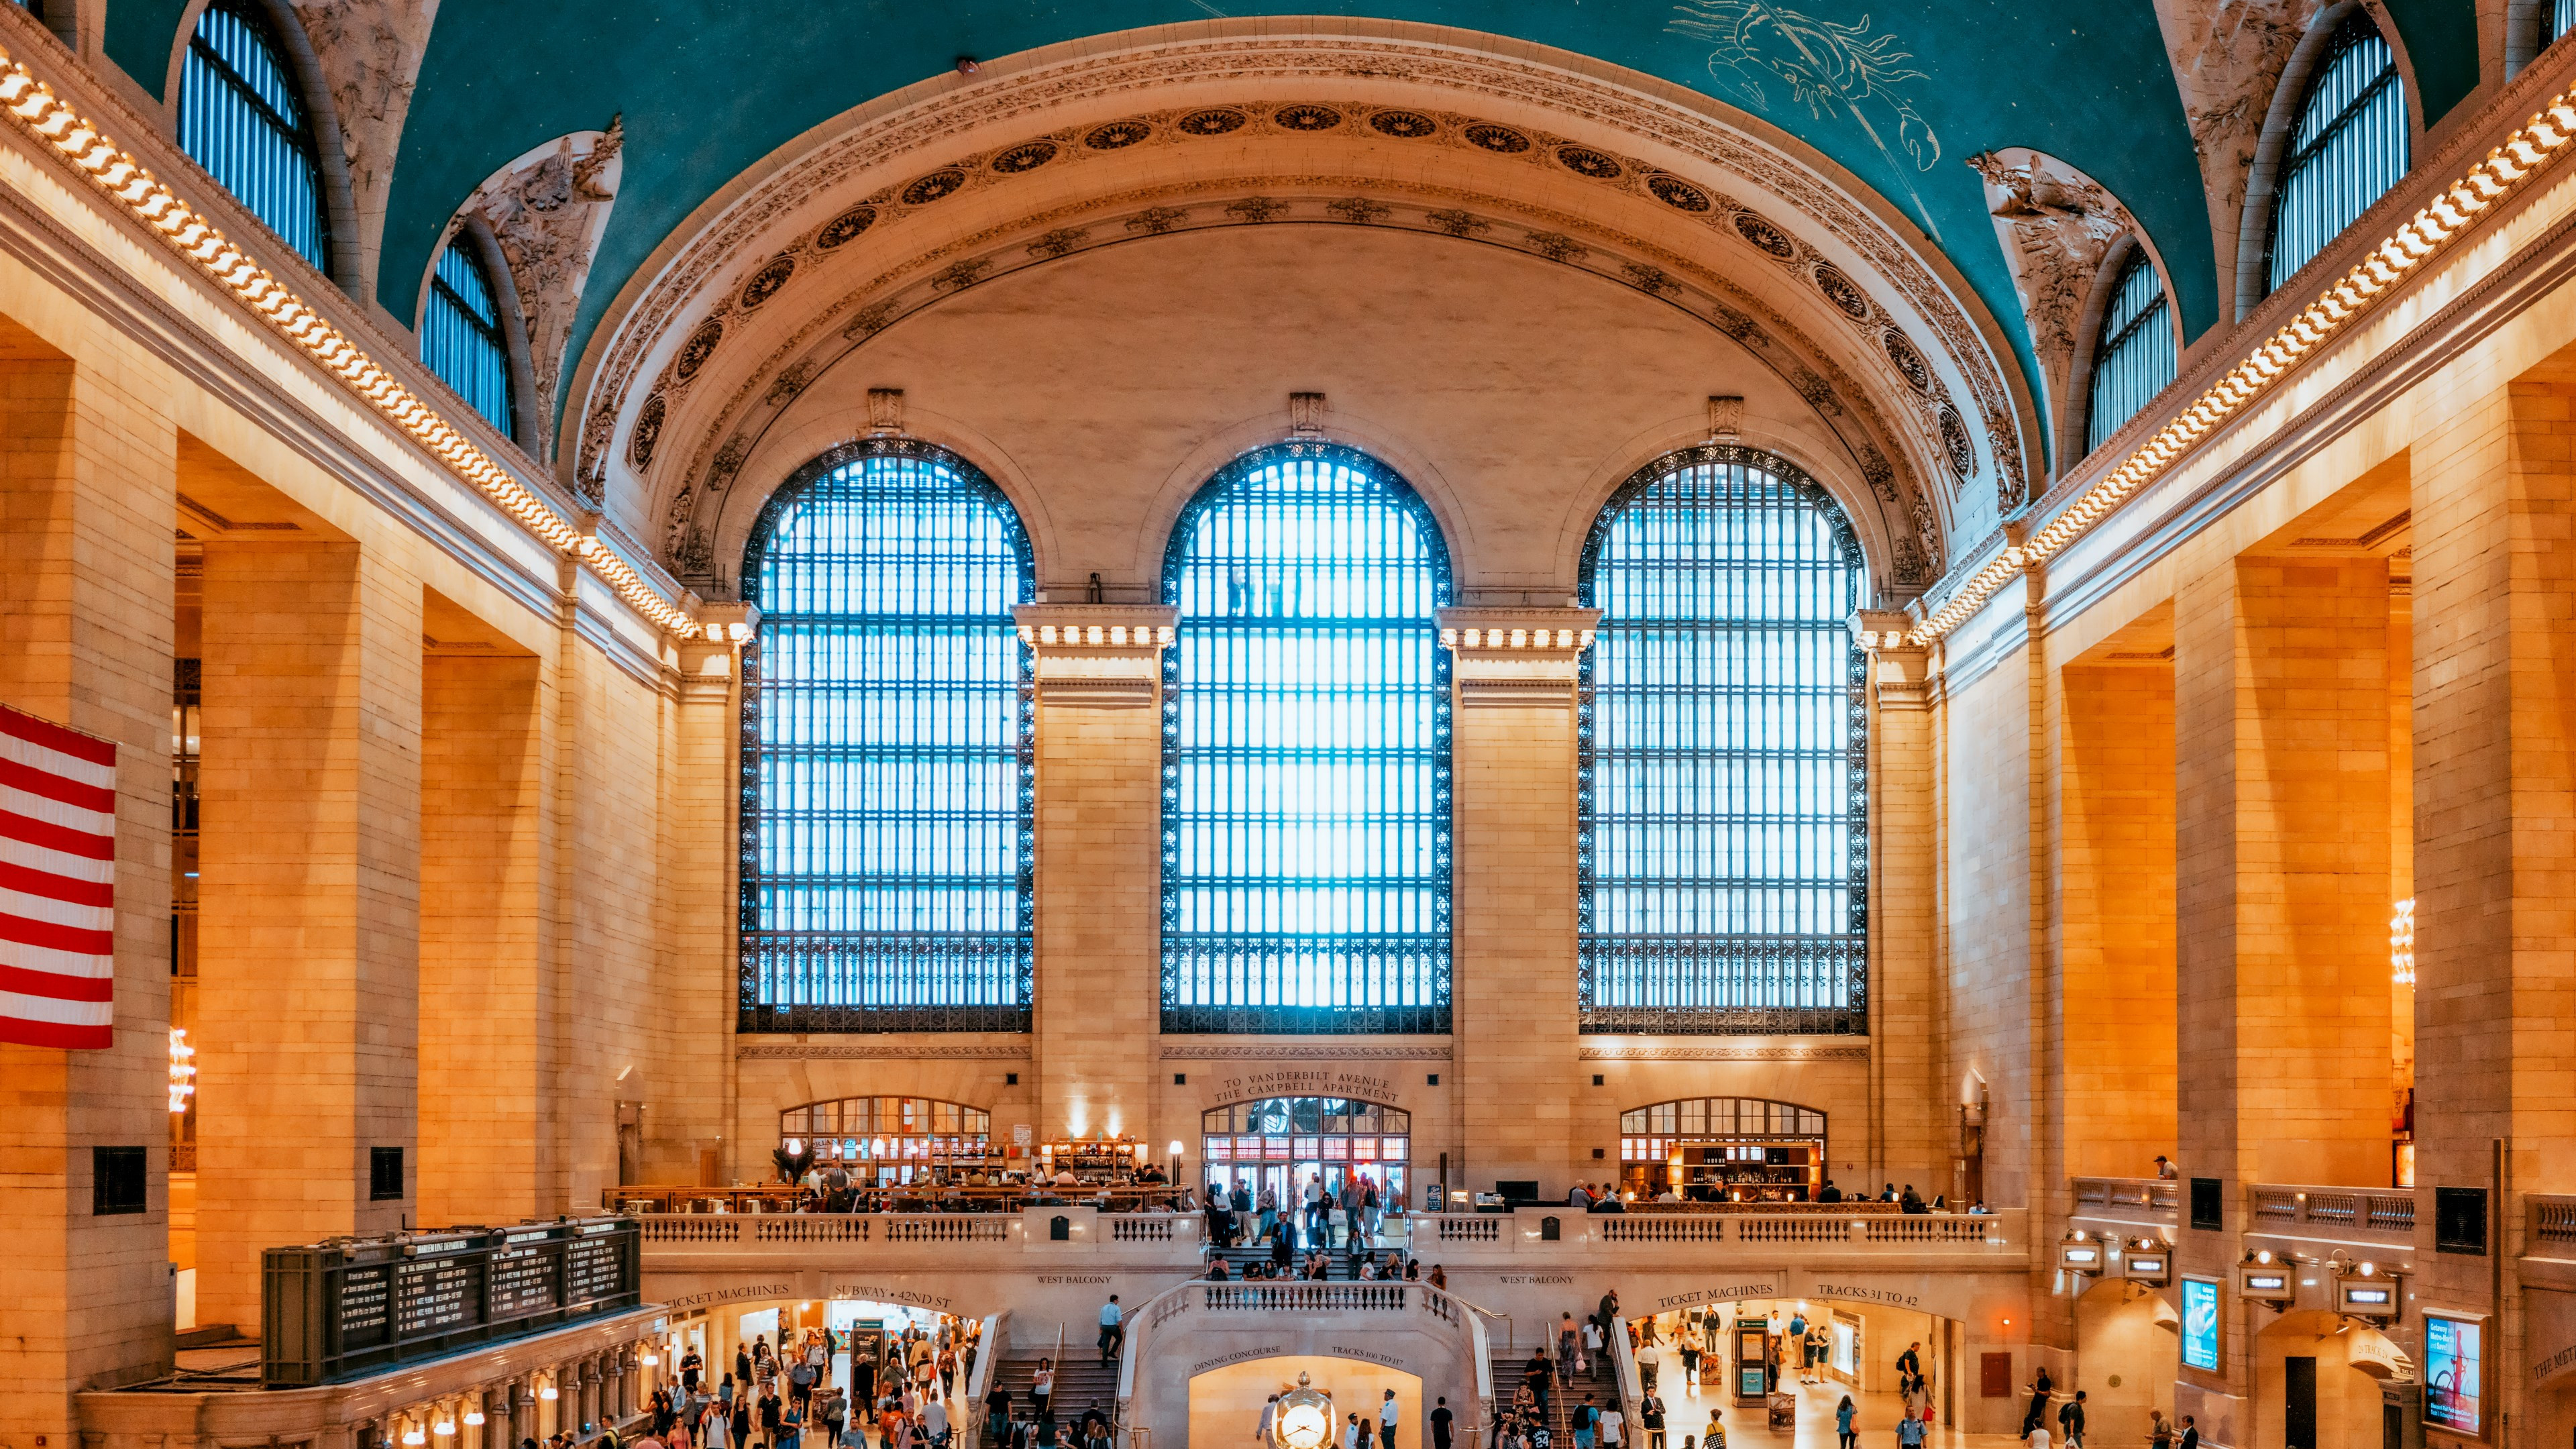 Grand Central Terminal, New York, United States wallpaper 3840x2160